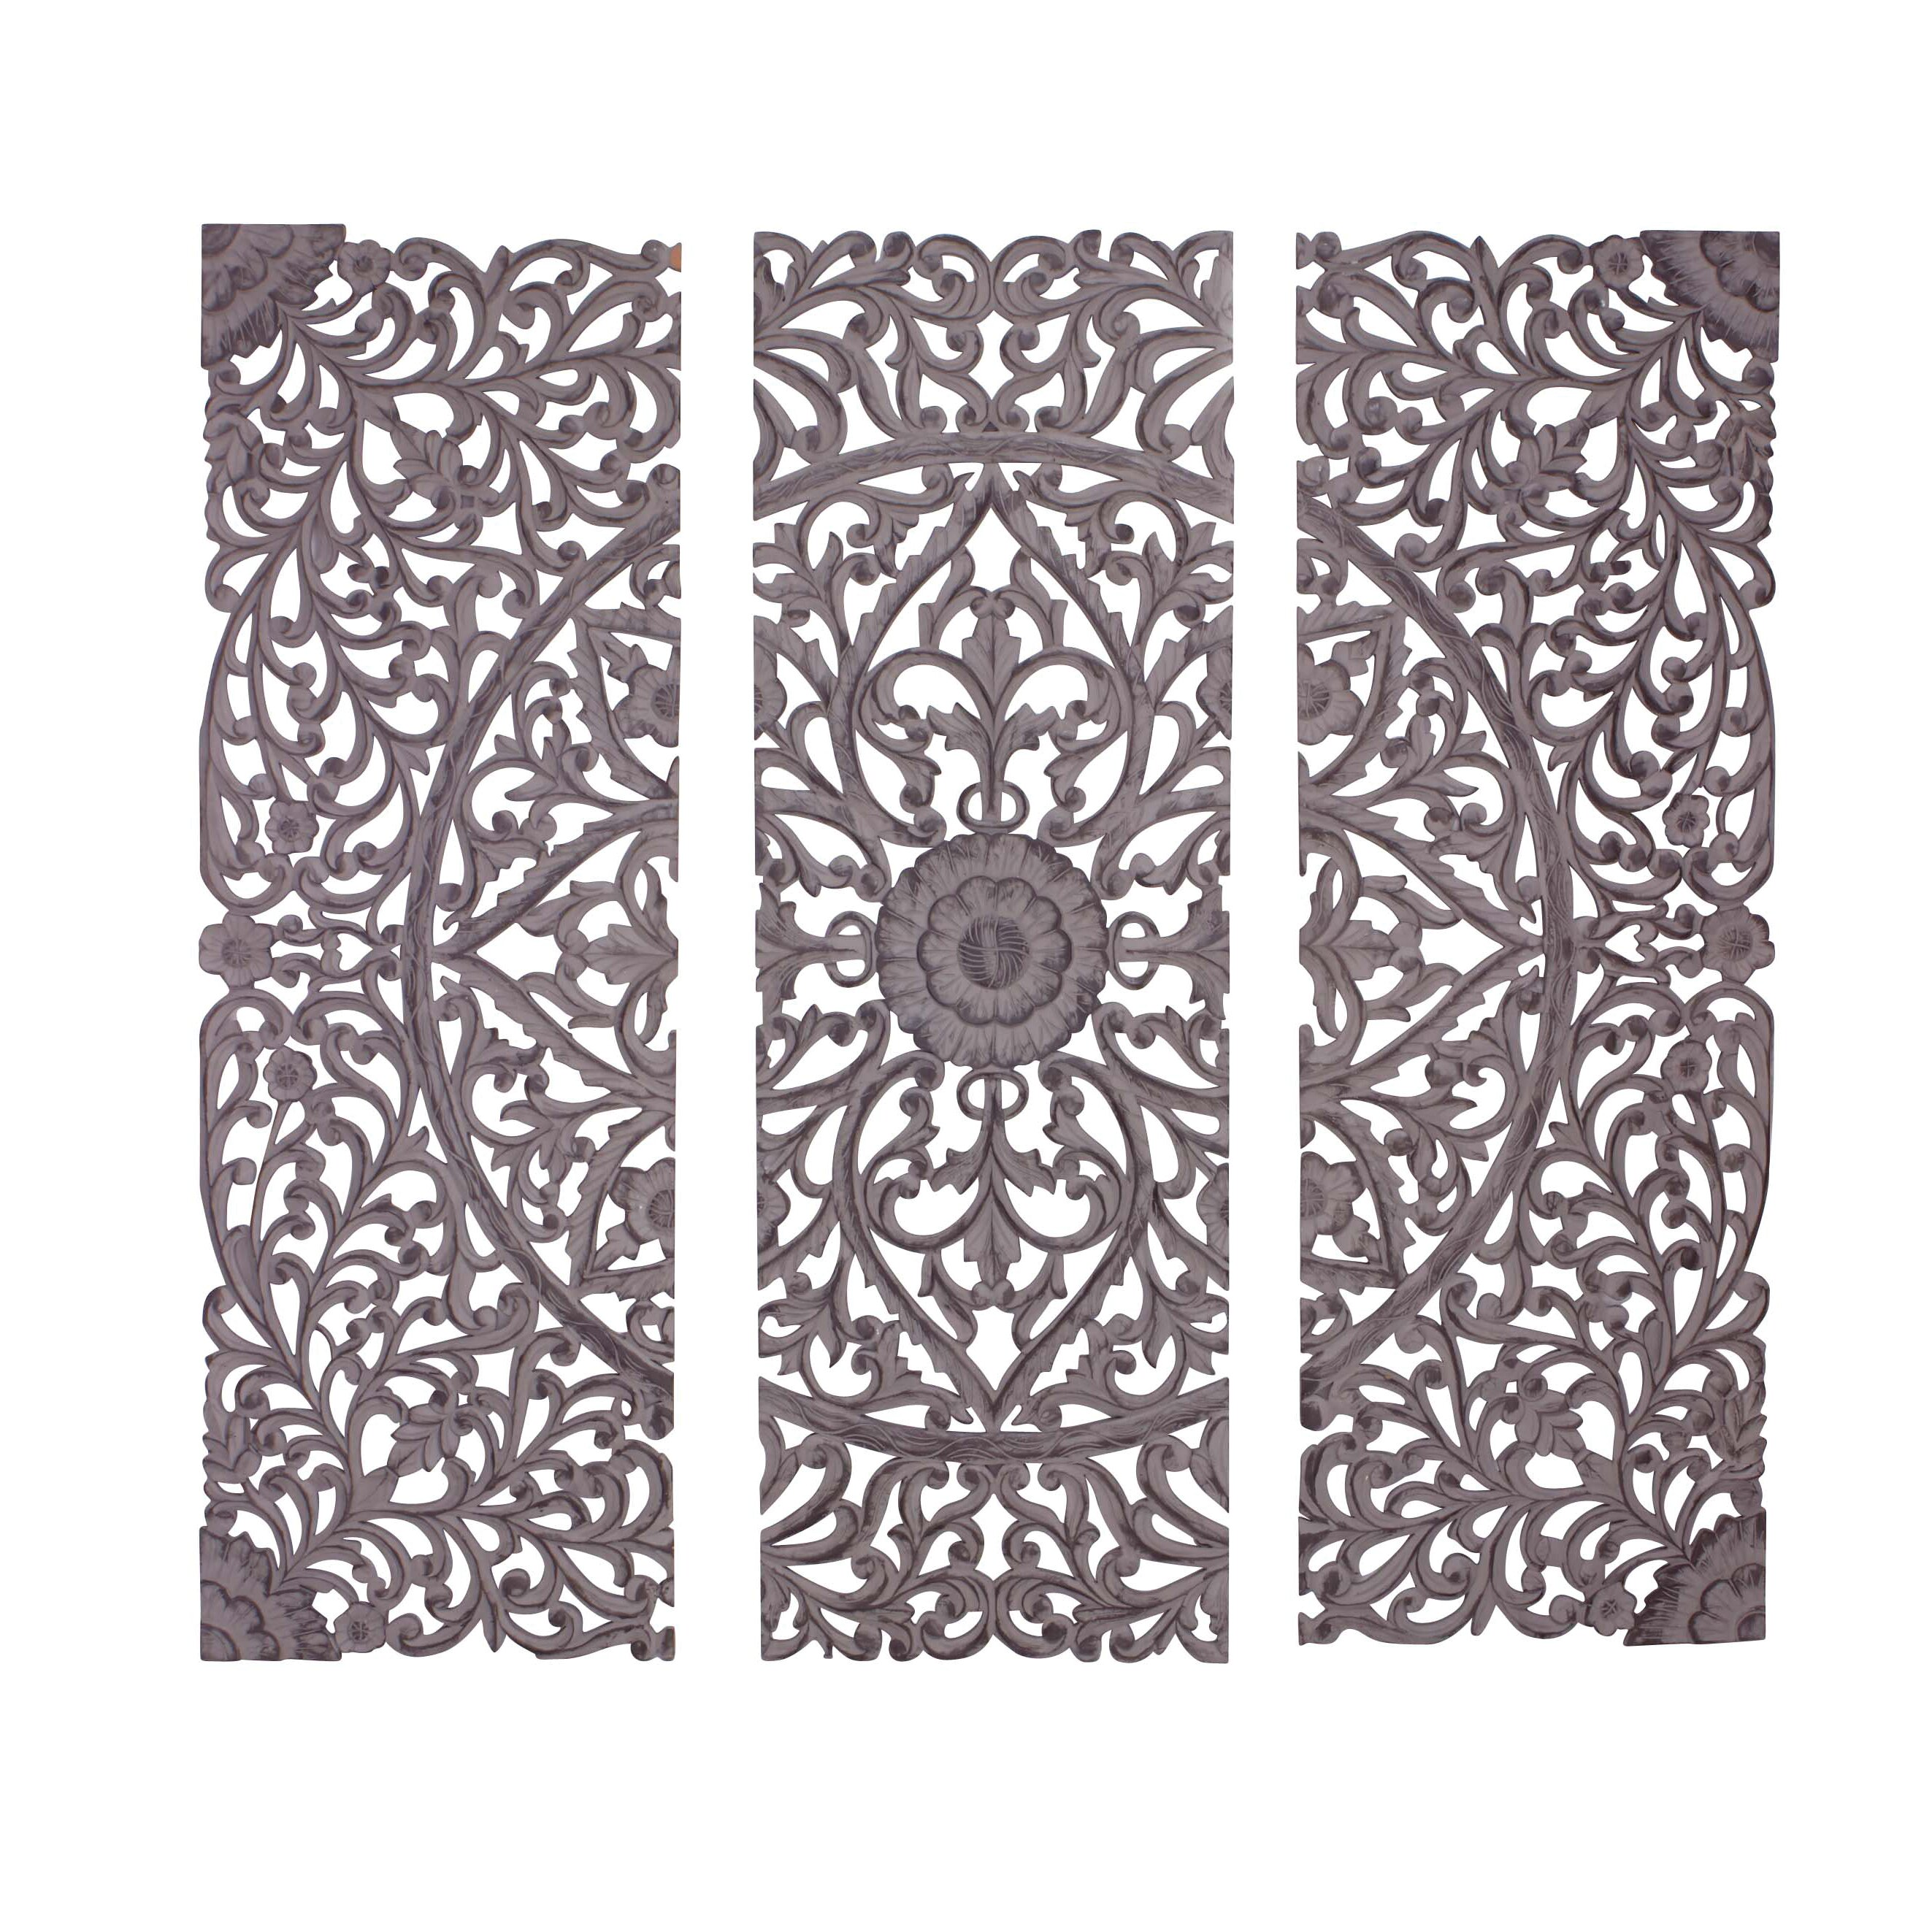 Wood Carved Wall Decor Woodland Imports 3 Piece The Must Have Wood Carved Panel Wall